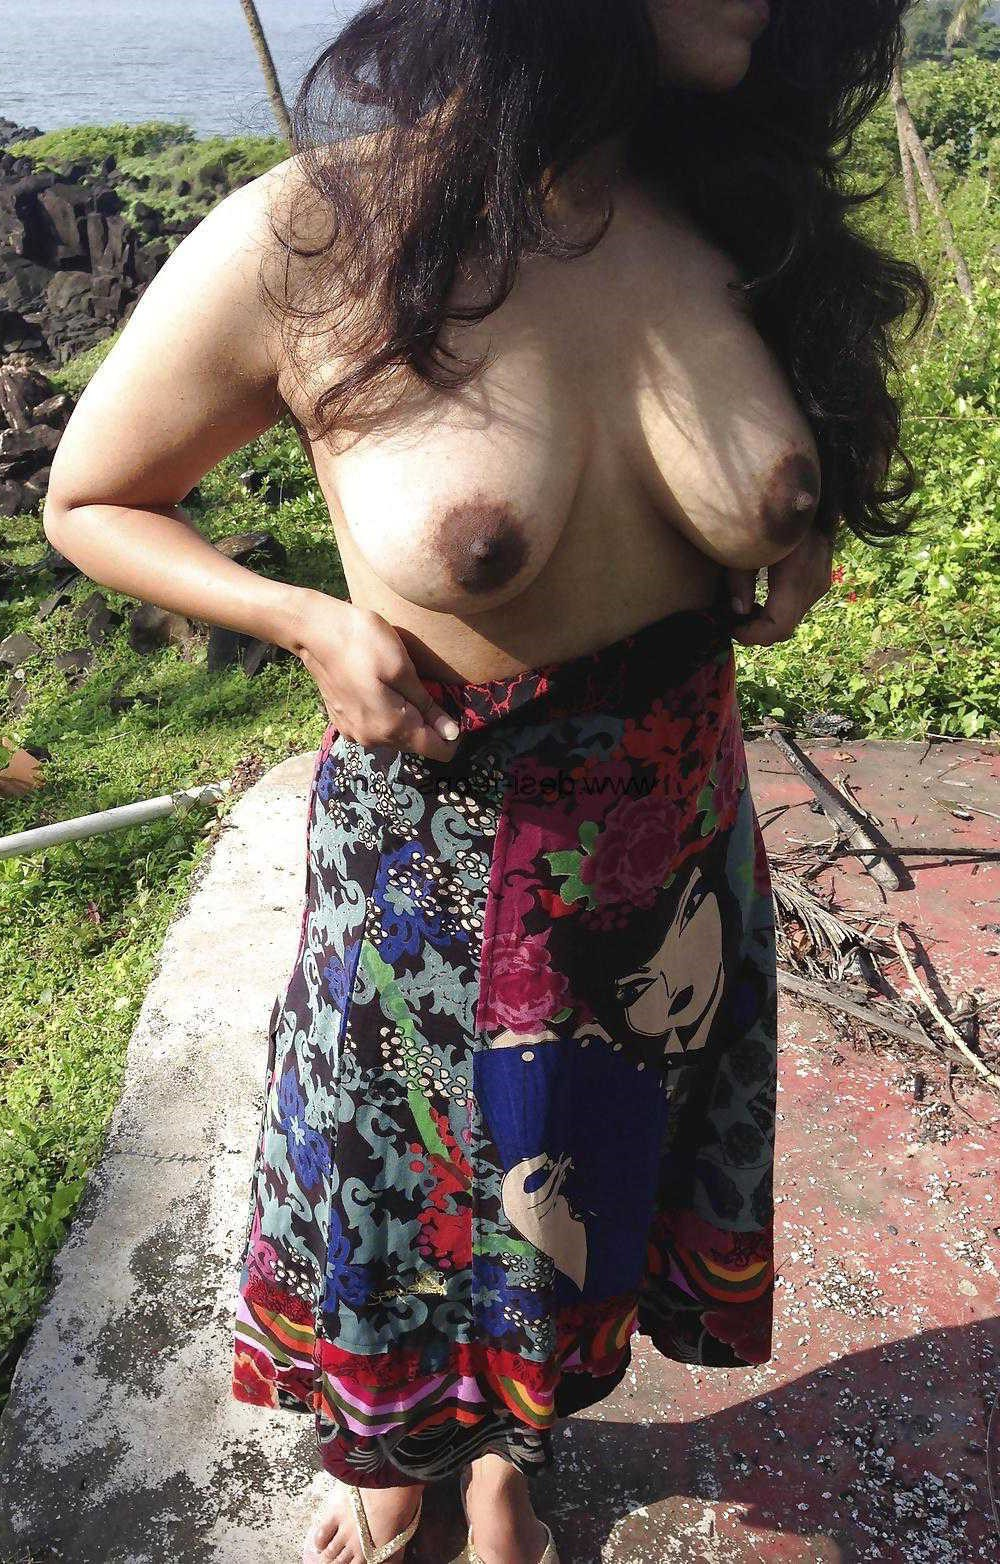 Indian Desi Aunty And Bhabhi Nude Photo Big Breast Desi -3751